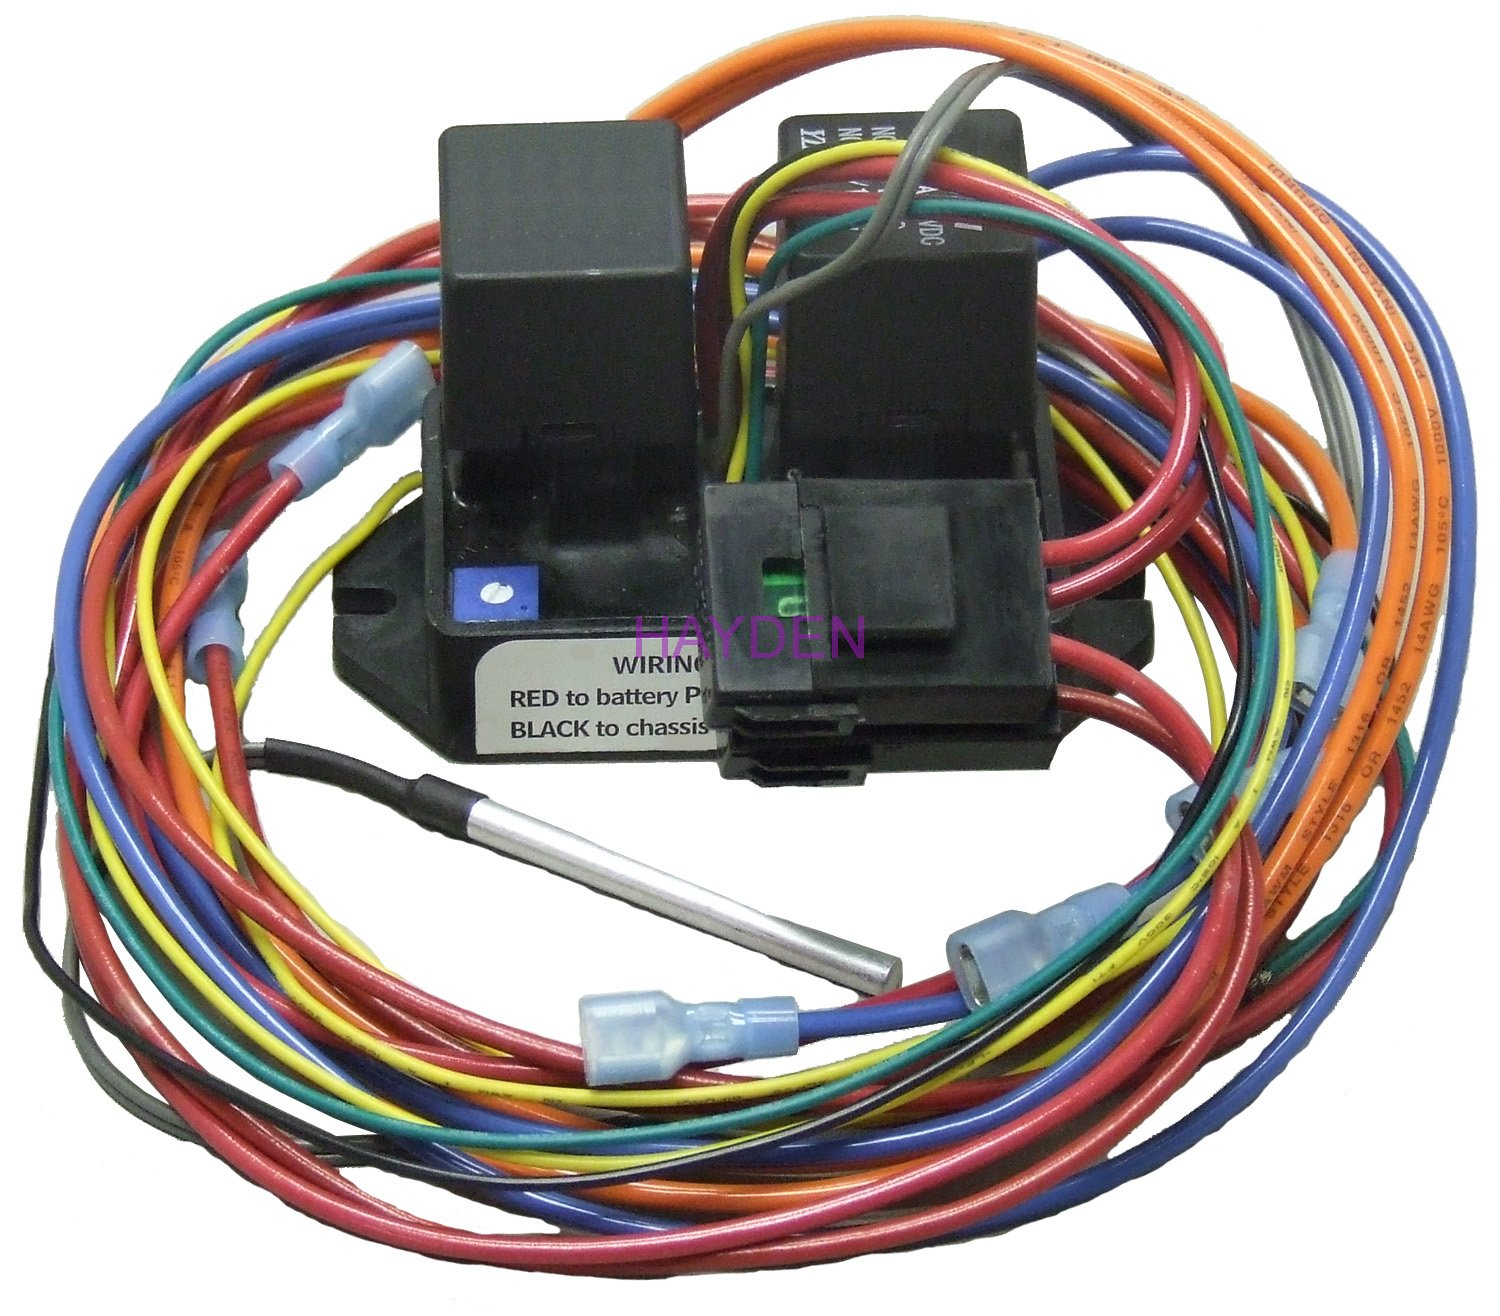 814p%2B2MGWNL._SL1500_ amazon com hayden automotive 3654 adjustable thermostatic fan hayden 3652 wiring diagram at panicattacktreatment.co